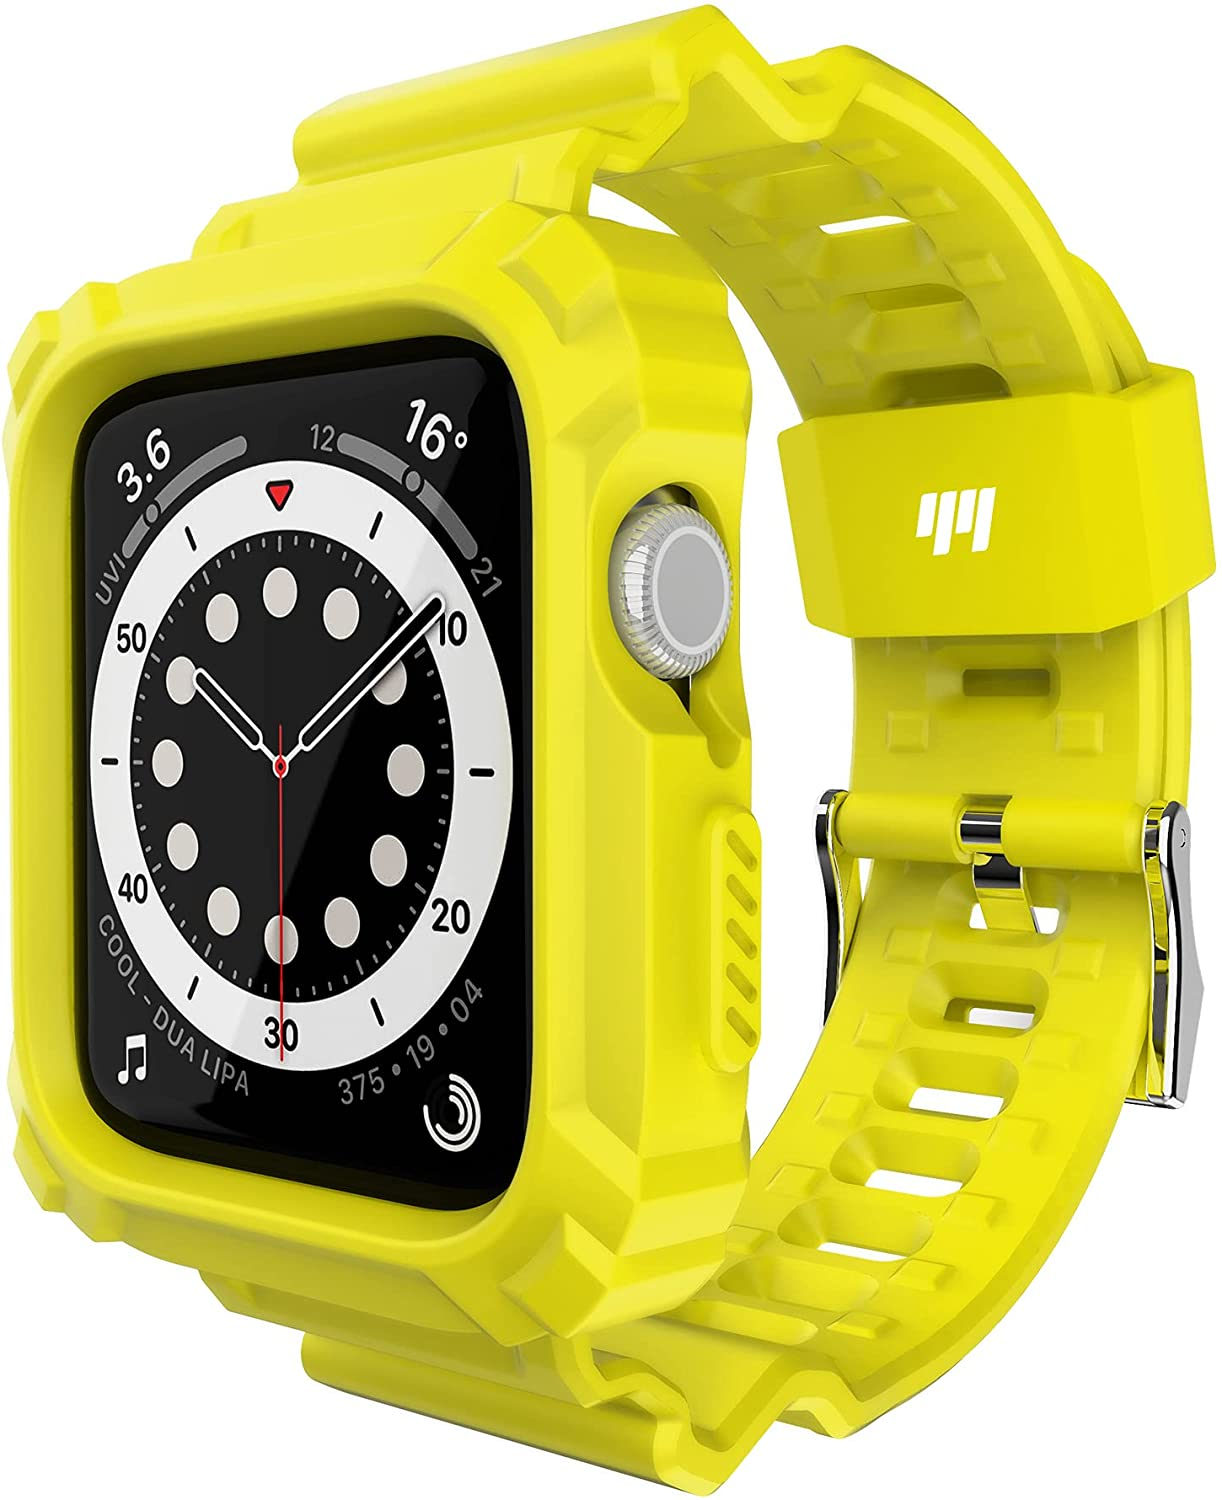 Double-N Compatible for Apple Watch Band 44mm 42mm with Bumper Case, Rugged Protective Shockproof Resistant Case with TPU Sport Strap Bands Fit for iWatch 6/5/4/3/2/1/SE-Illuminating Yellow